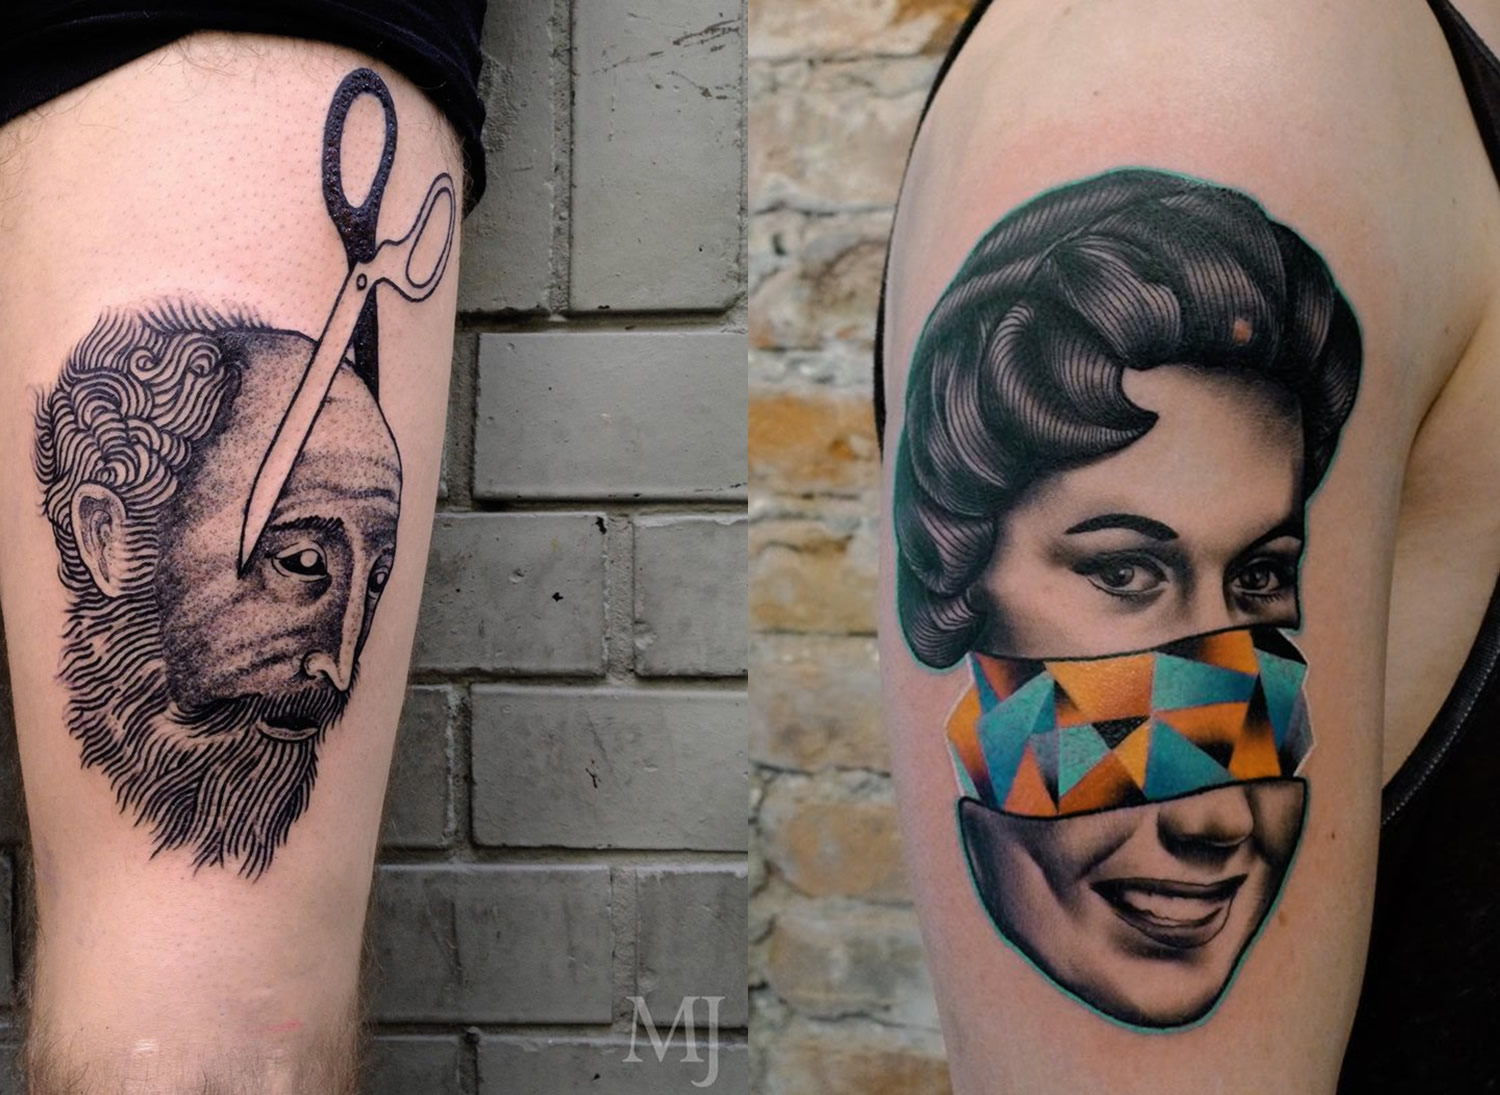 scissor cutting head by Martin Jahn, and woman with sliced head and rainbow triangles by Mariusz Trubisz